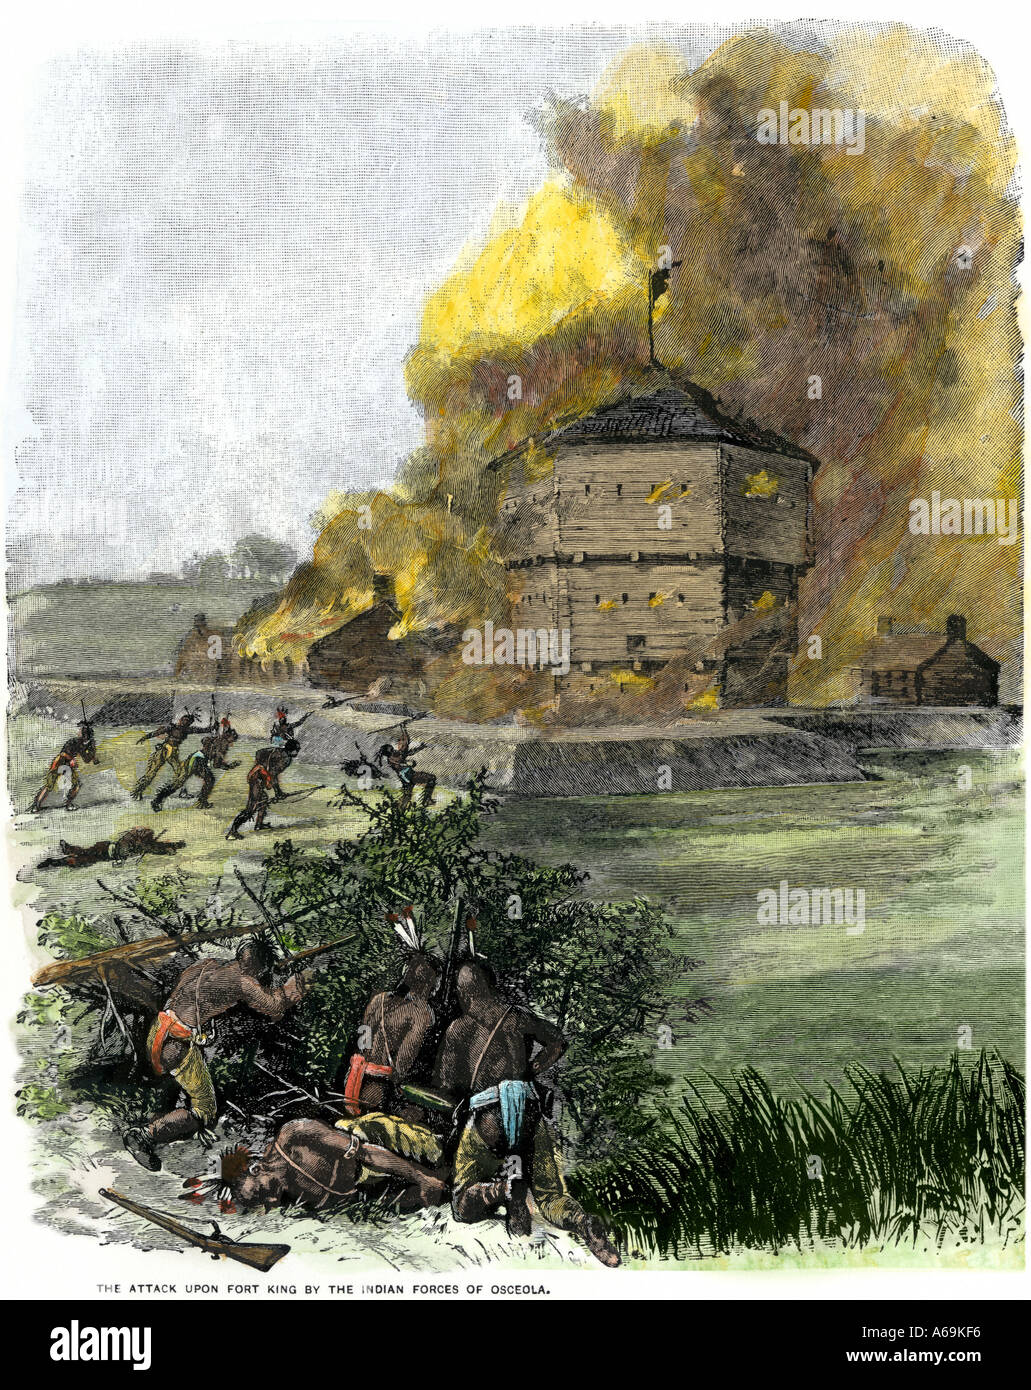 Attack on Fort King by Native Americans under Osceola during the Seminole Wars 1835. Hand-colored woodcut - Stock Image